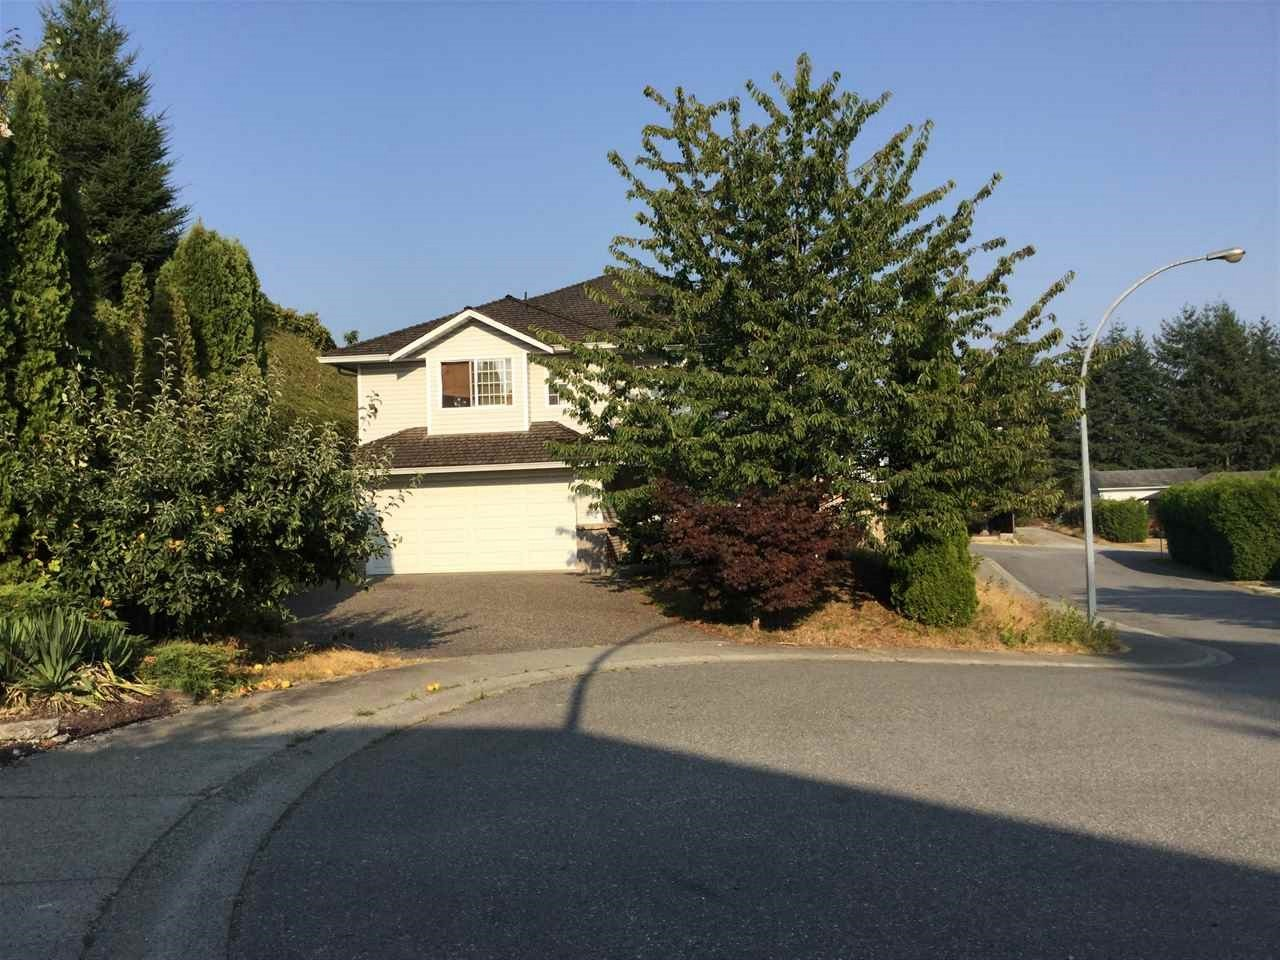 Main Photo: 32873 SHIKAZE Court in Mission: Mission BC House for sale : MLS®# R2201280